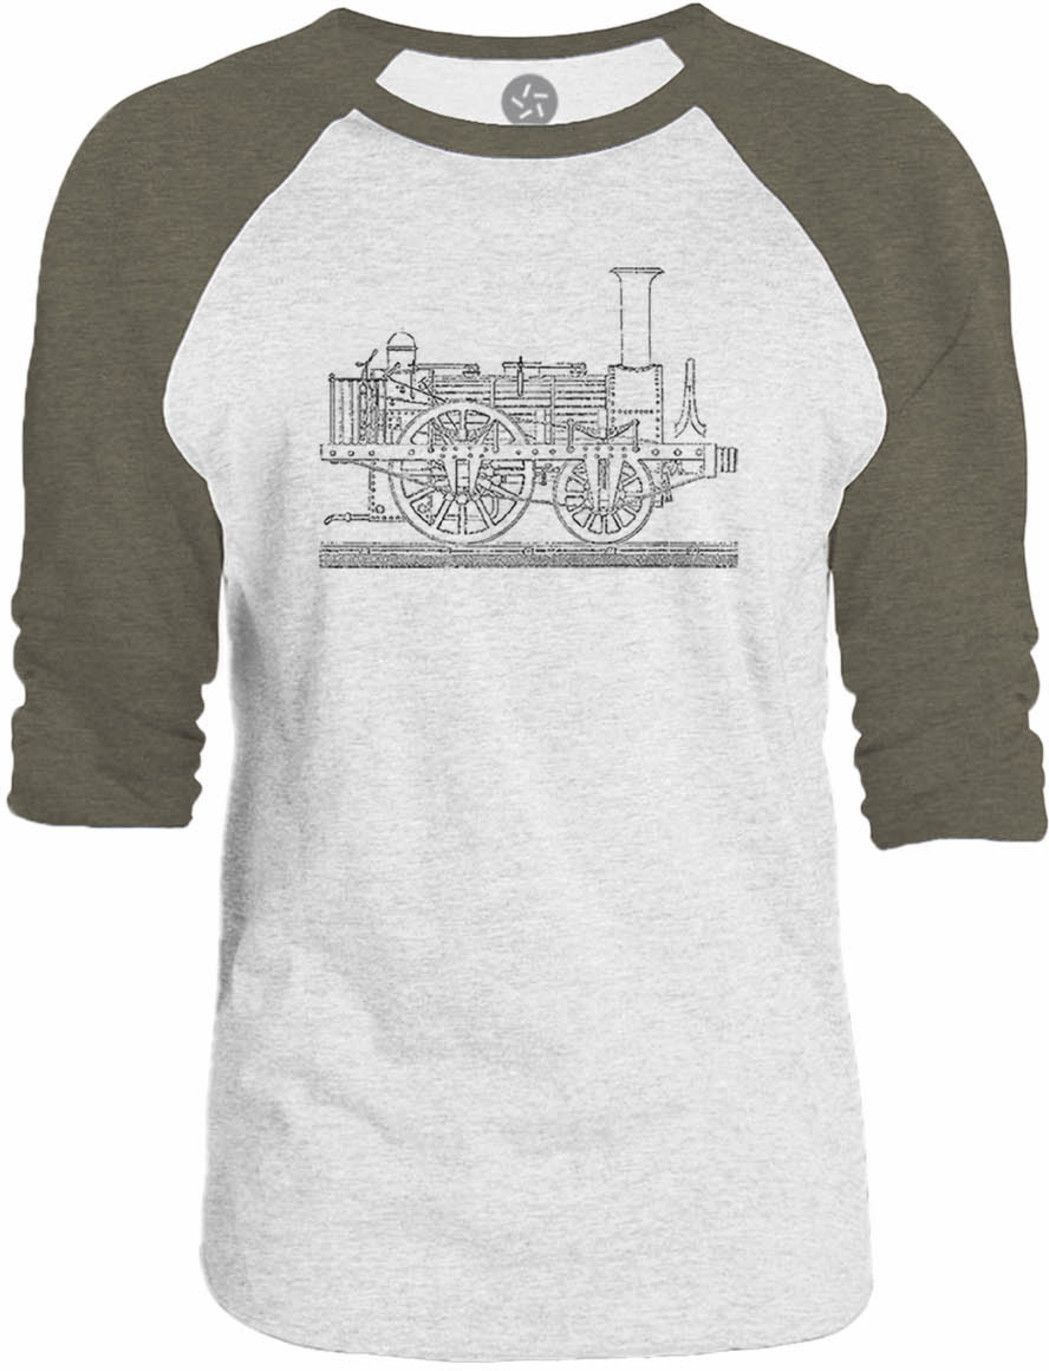 Big texas steam tram blueprint 34 sleeve raglan baseball t shirt big texas steam tram blueprint 34 sleeve raglan baseball t shirt malvernweather Choice Image